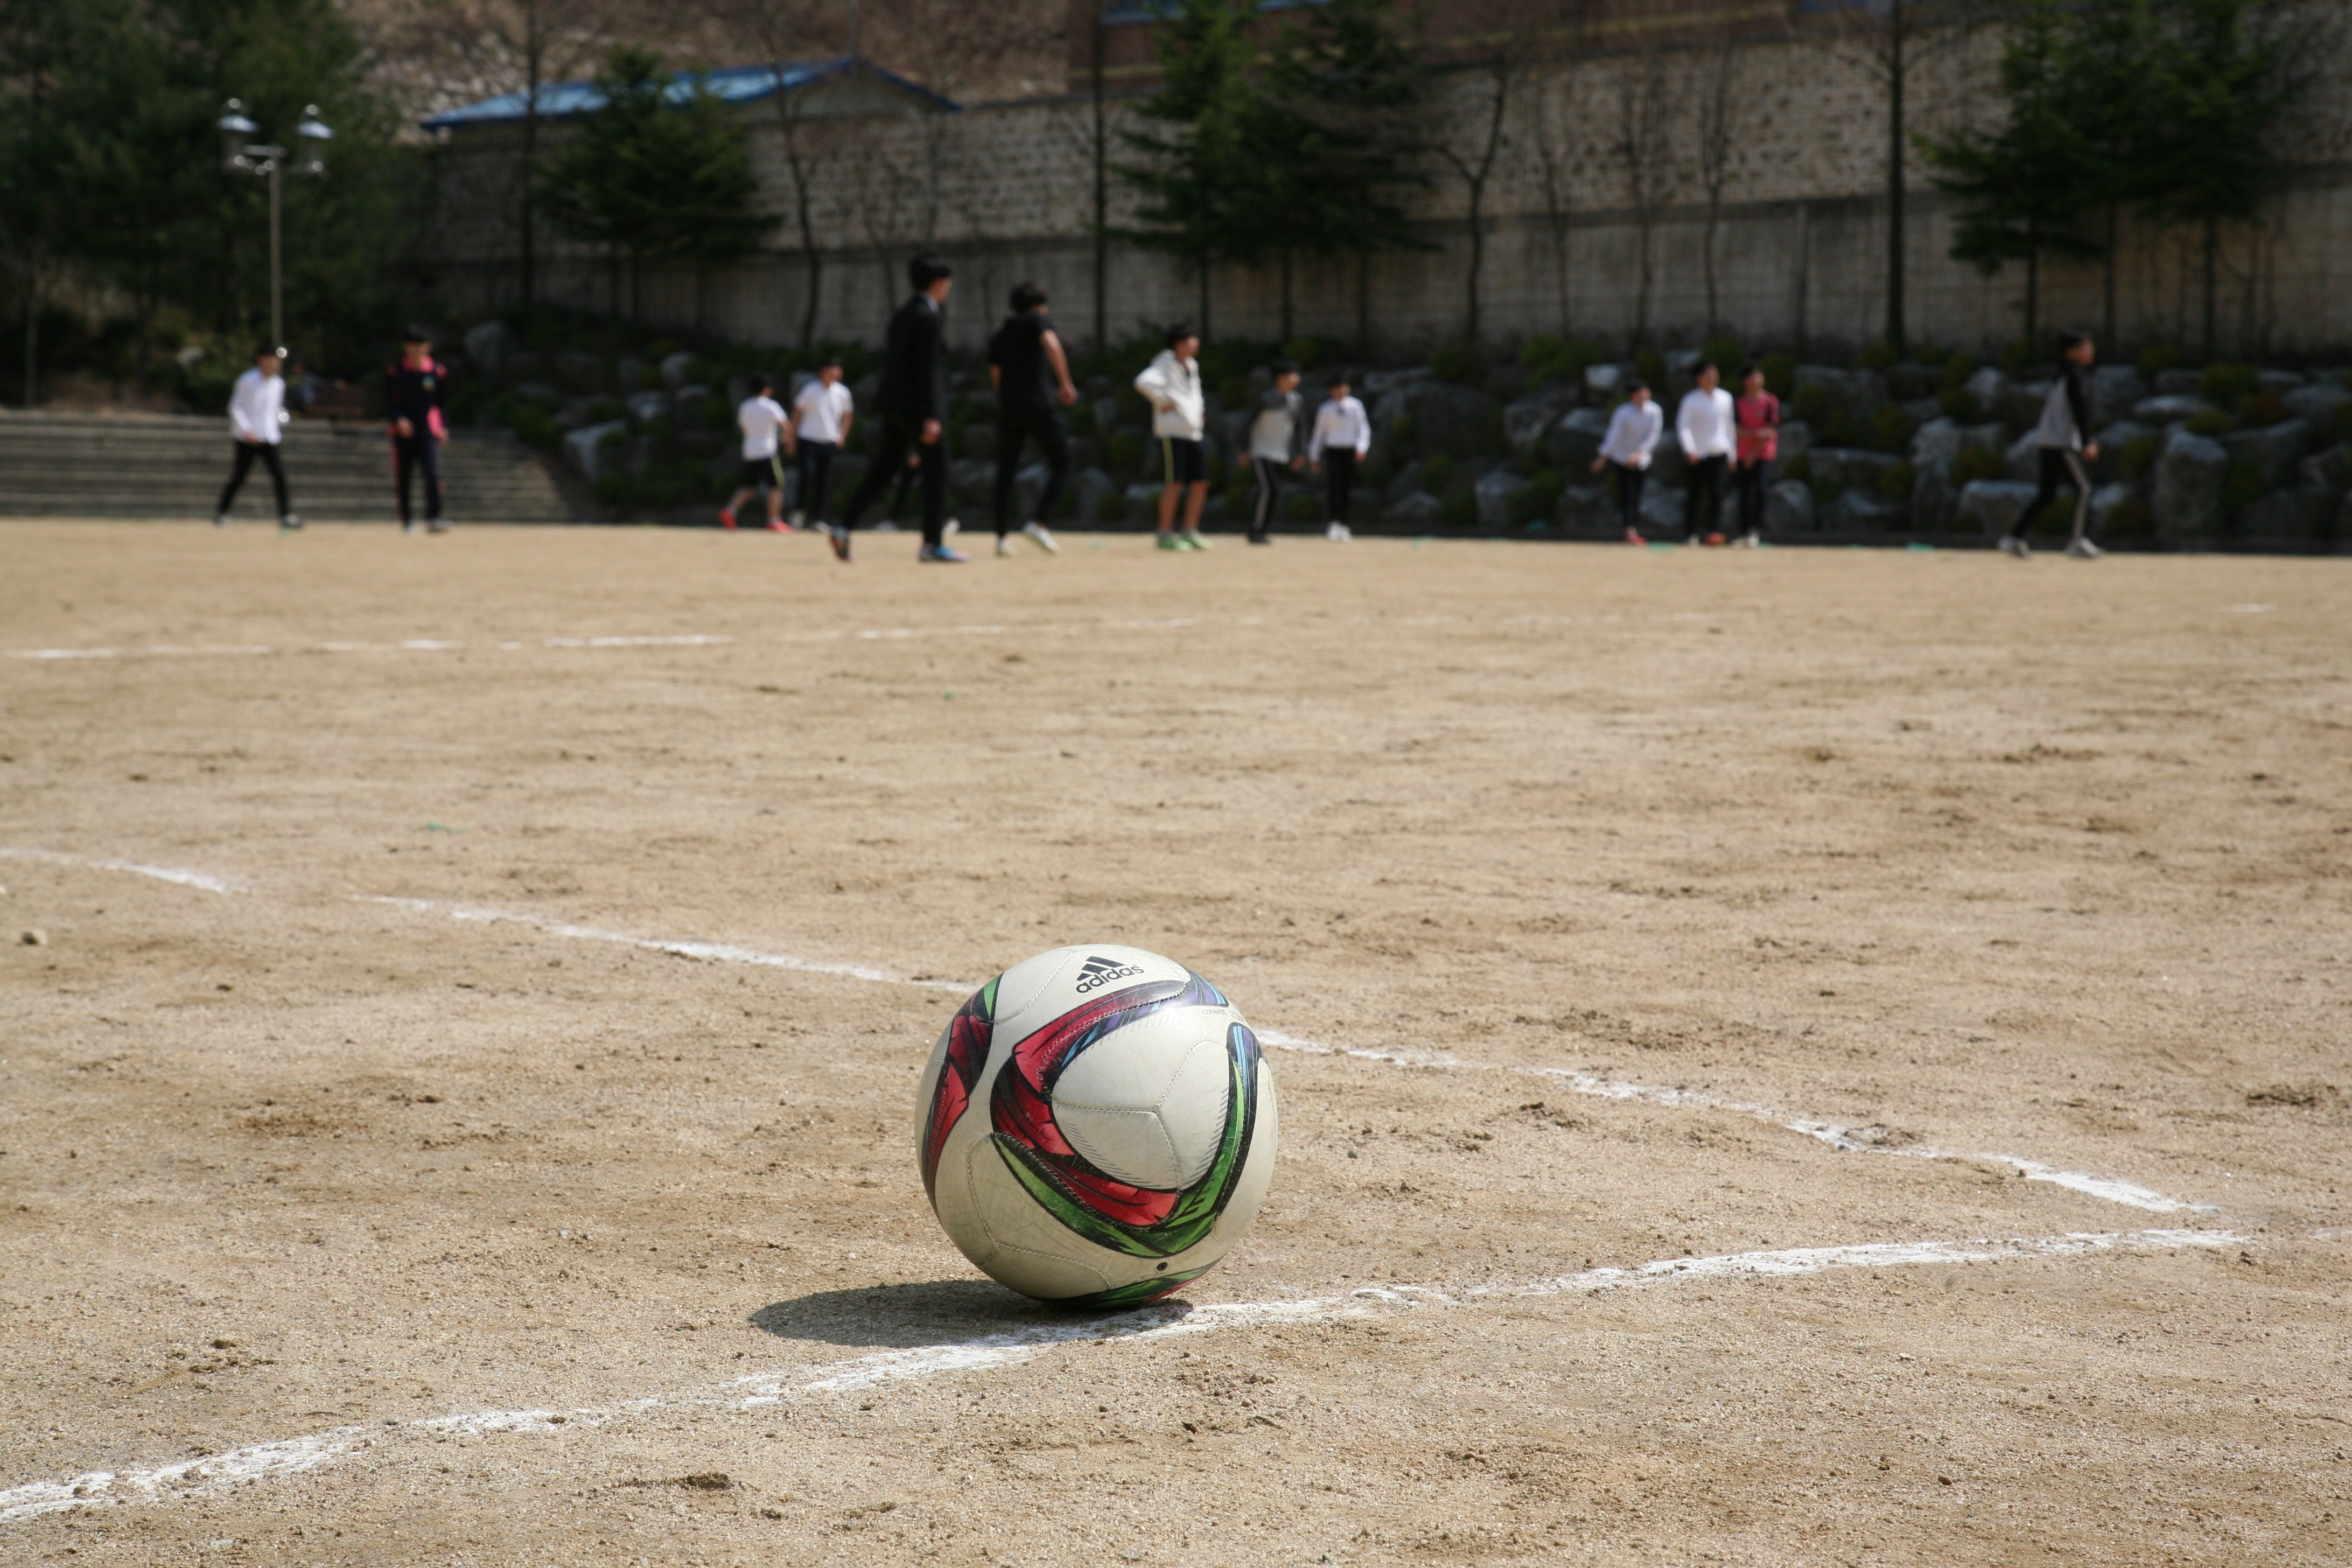 White Red and Green Ball Near Group of People Playing Soccer, Soccer, Sand, Recreation, Soccer field, HQ Photo